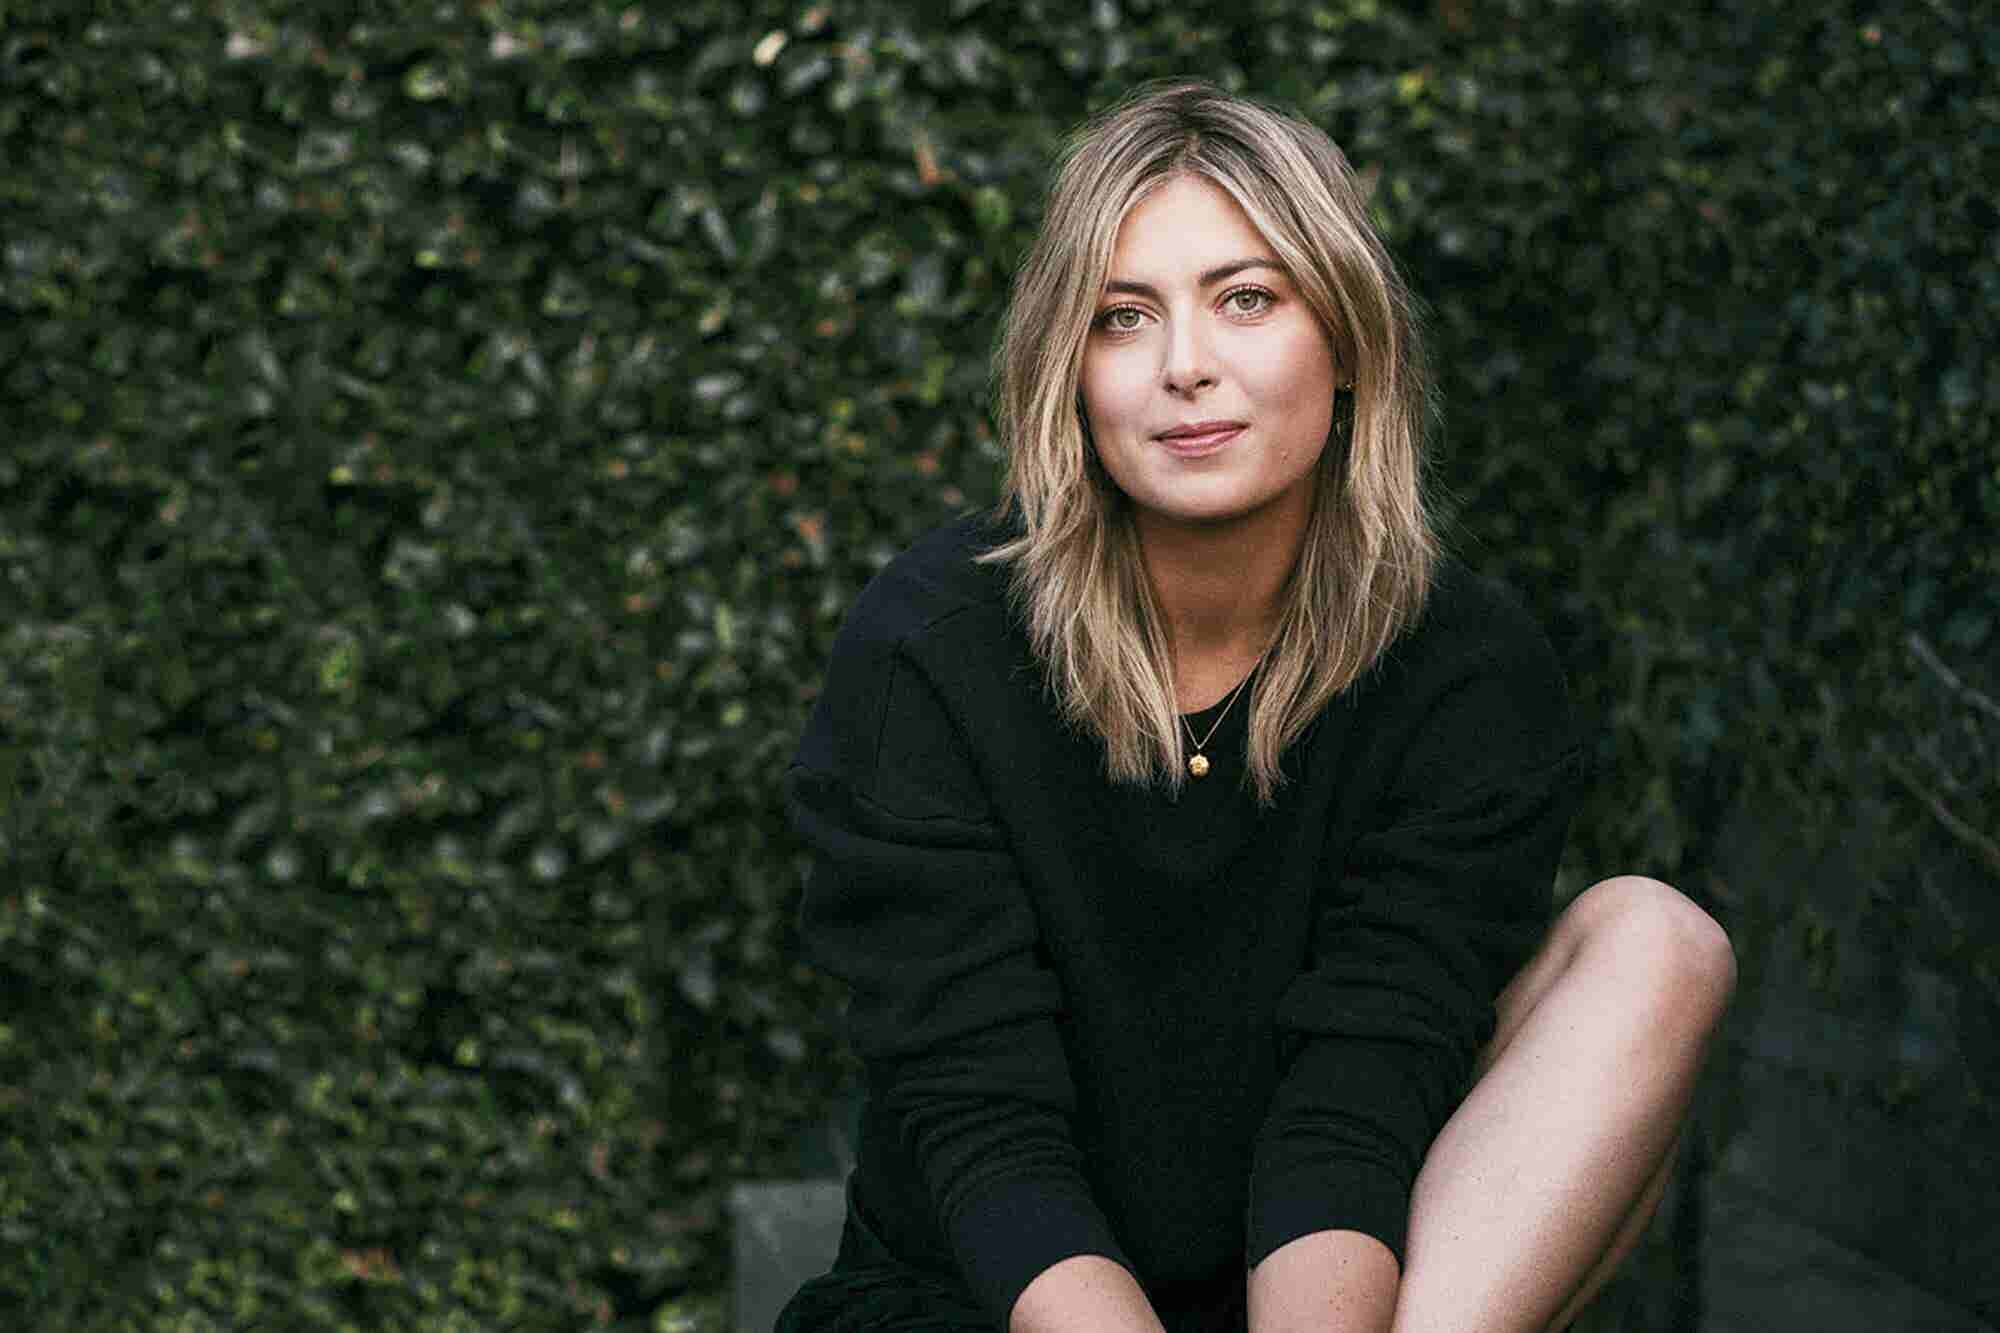 Maria Sharapova Built a Business Empire Thanks to Her Winning Team